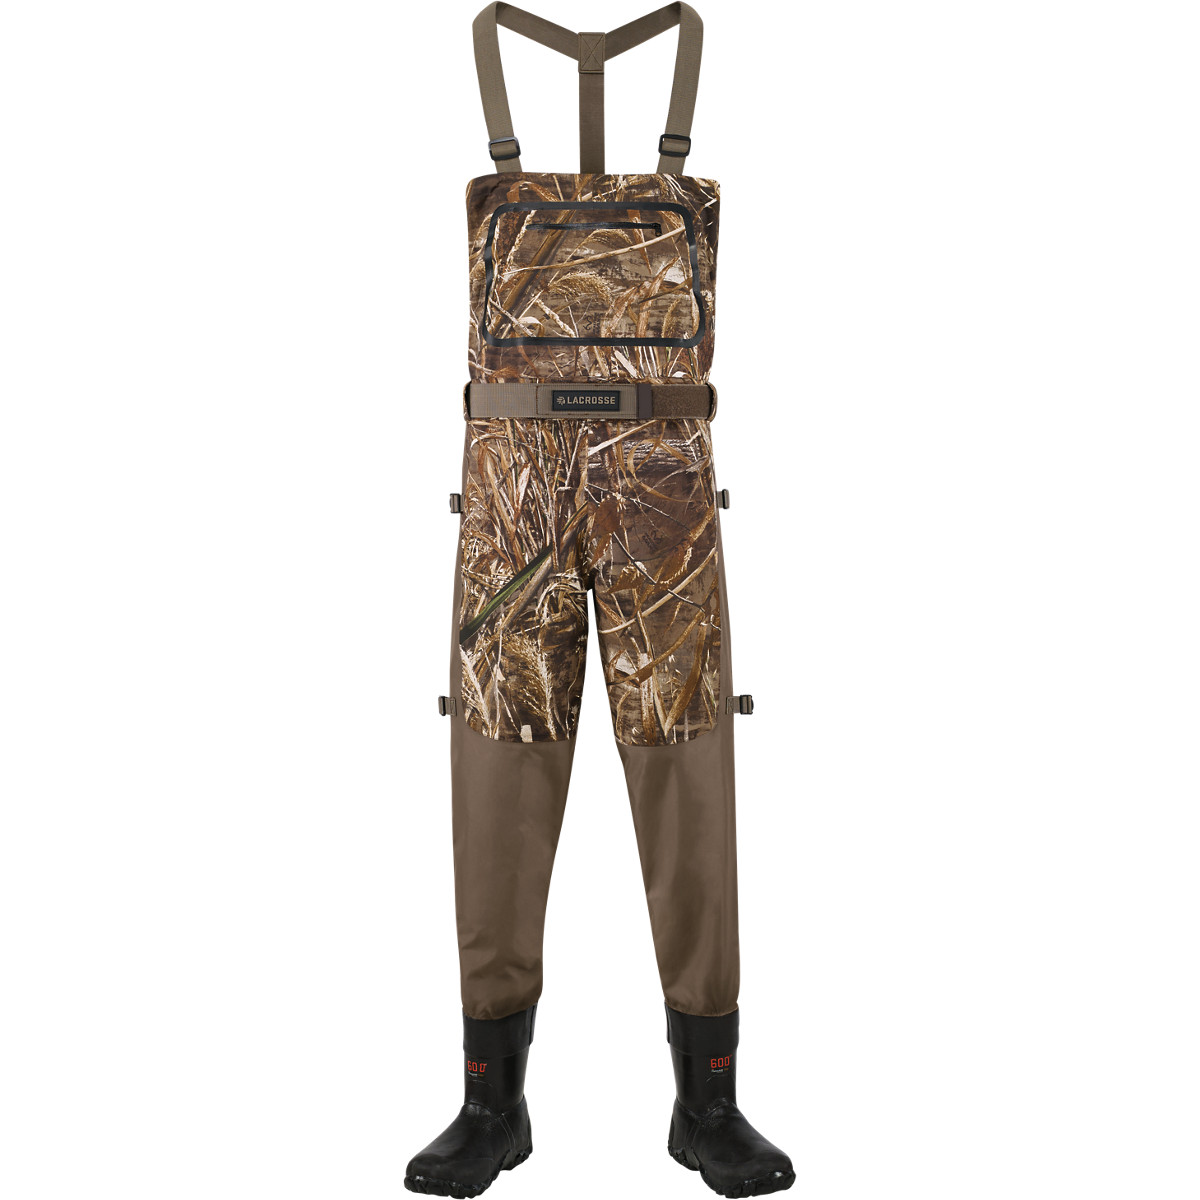 Alpha Swampfox Drop-Top Realtree Max-5 600G